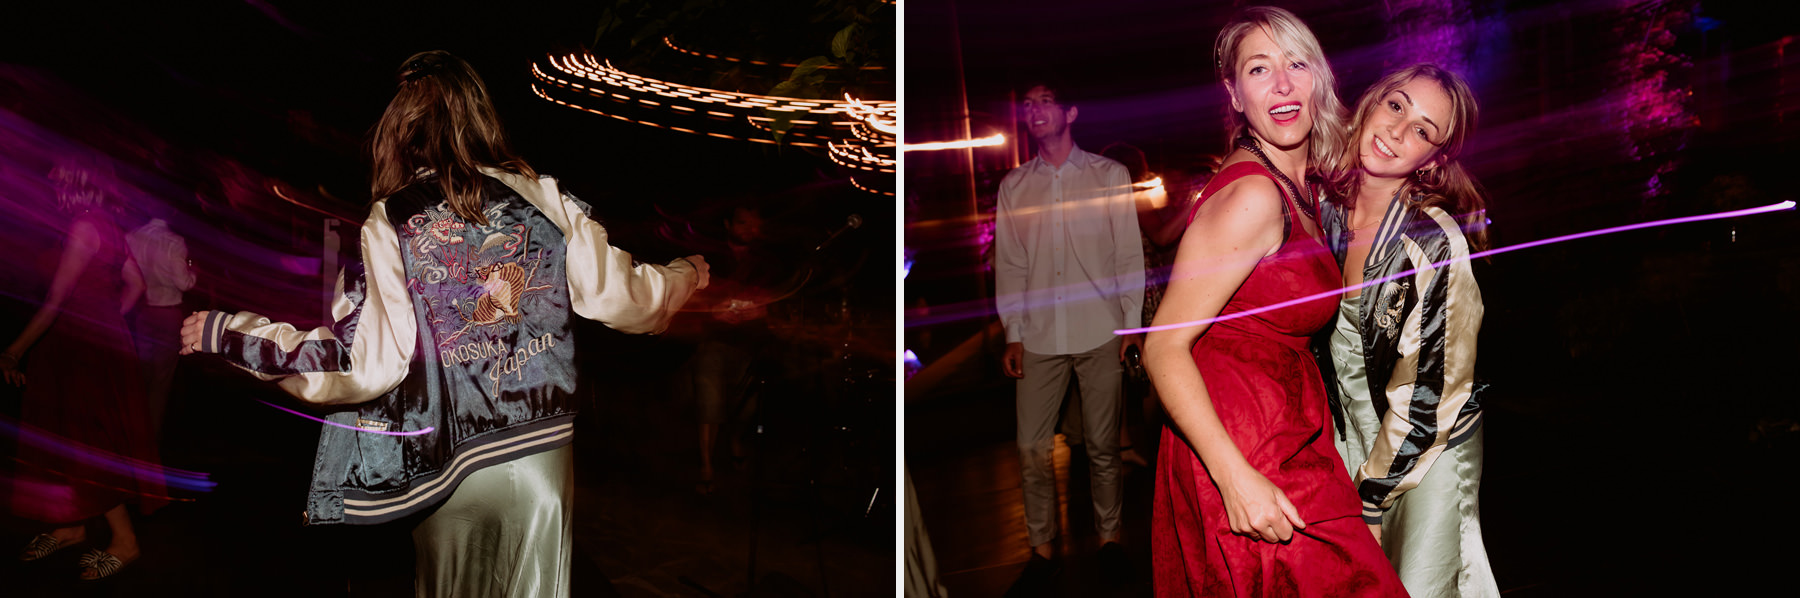 creative wedding photographer tuscany dance floor dj vynil scrat